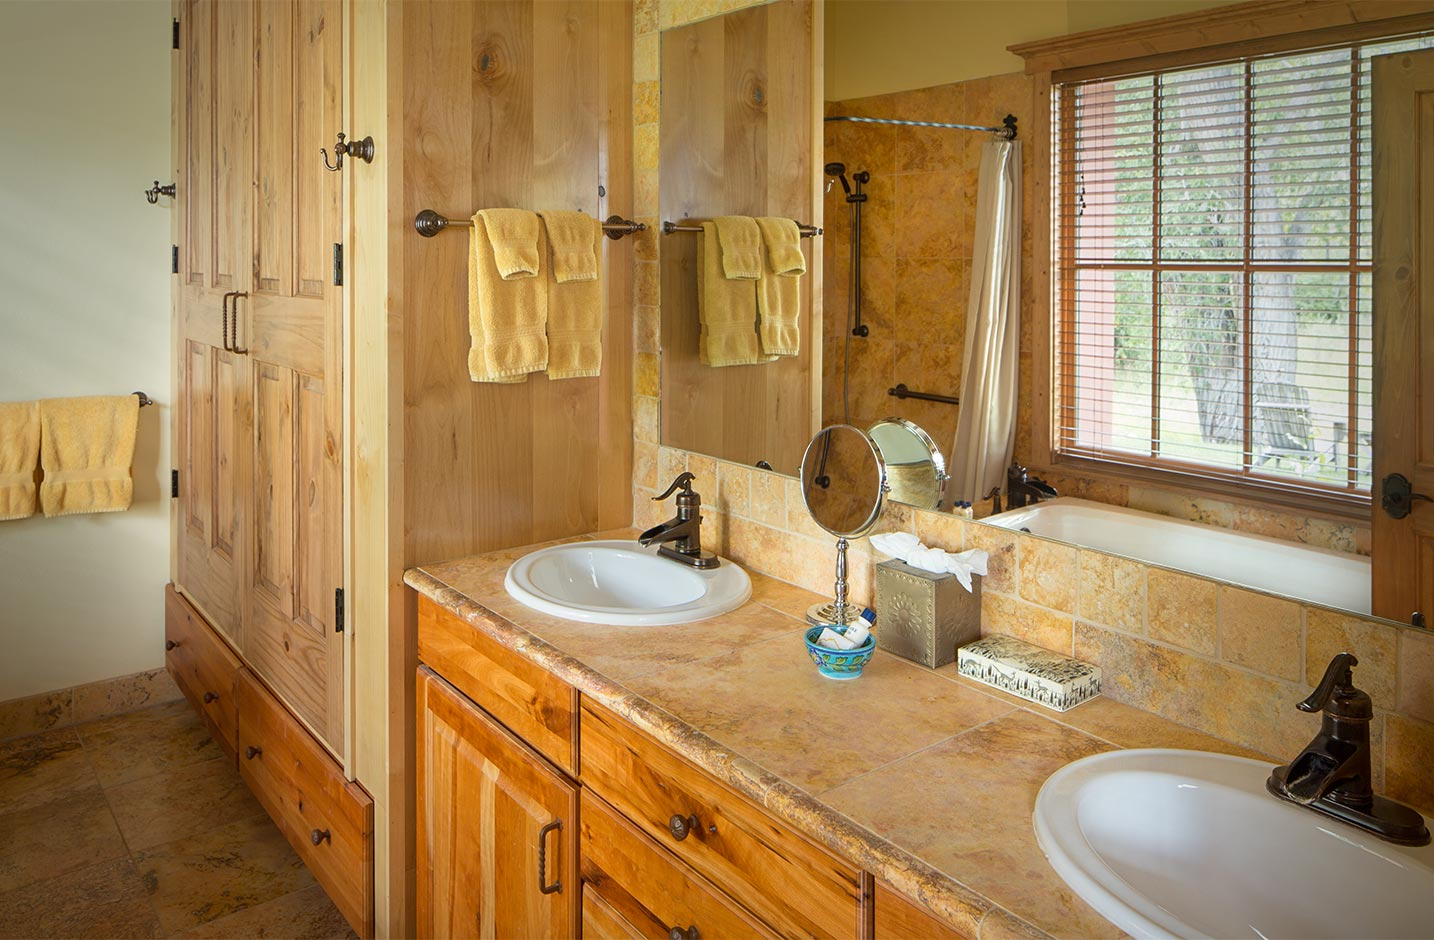 Bathroom with double vanity sinks and a walk-in shower